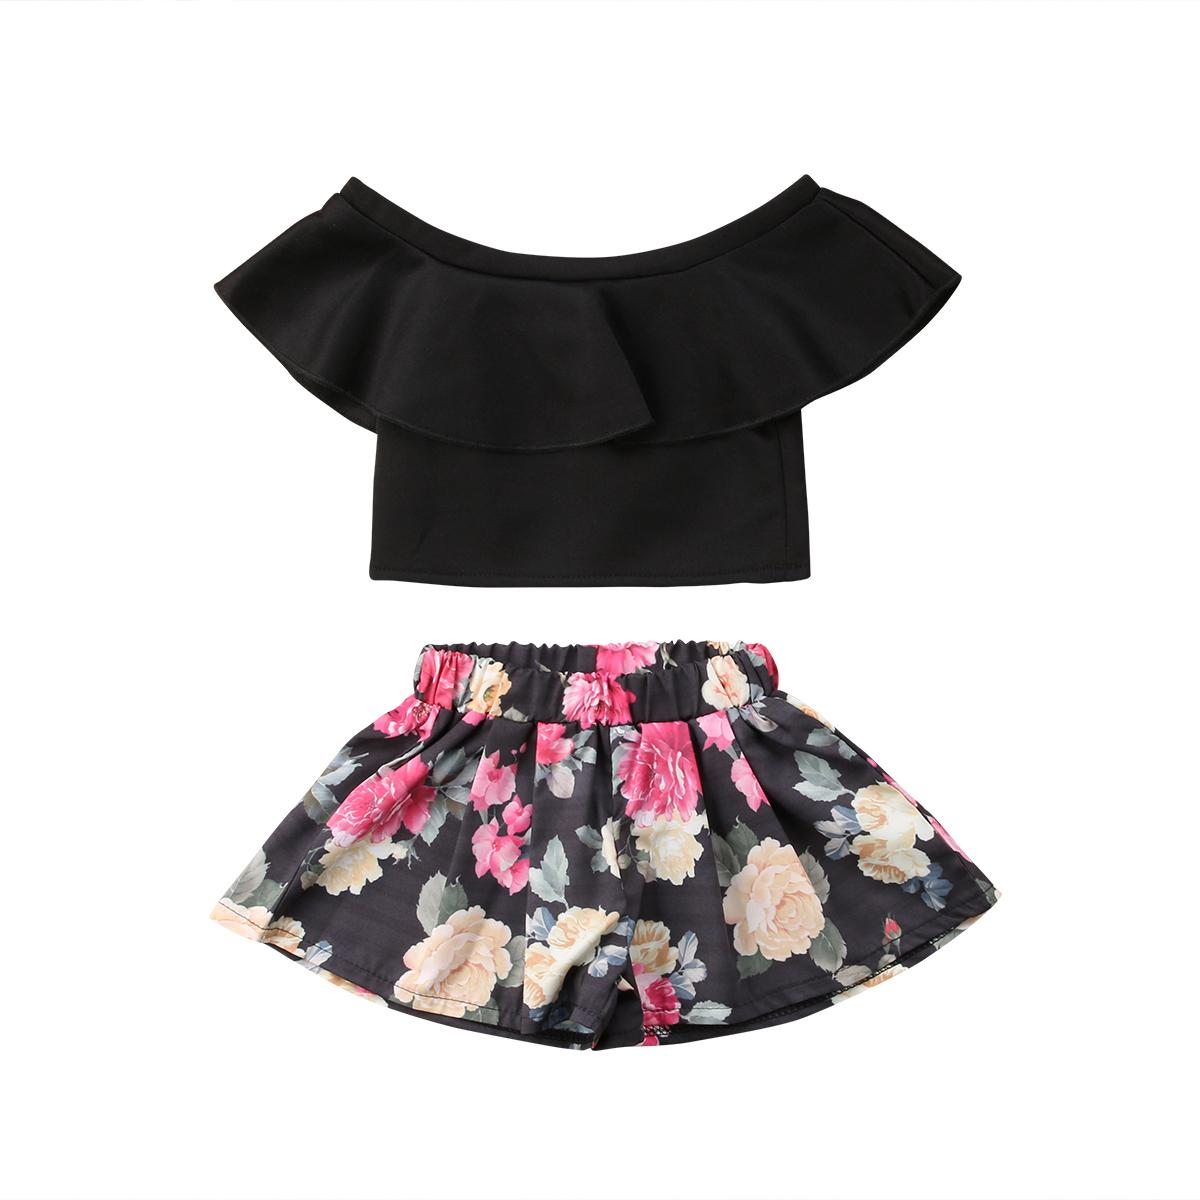 2ebd29202 2019 Cute Toddler Baby Kids Girl Off Shoulder Tops Ruffle Neck Short Sleeve  Floral Shorts Child Cotton Summer Outfits Girl 1 5T From Beasy, $27.68 |  DHgate.